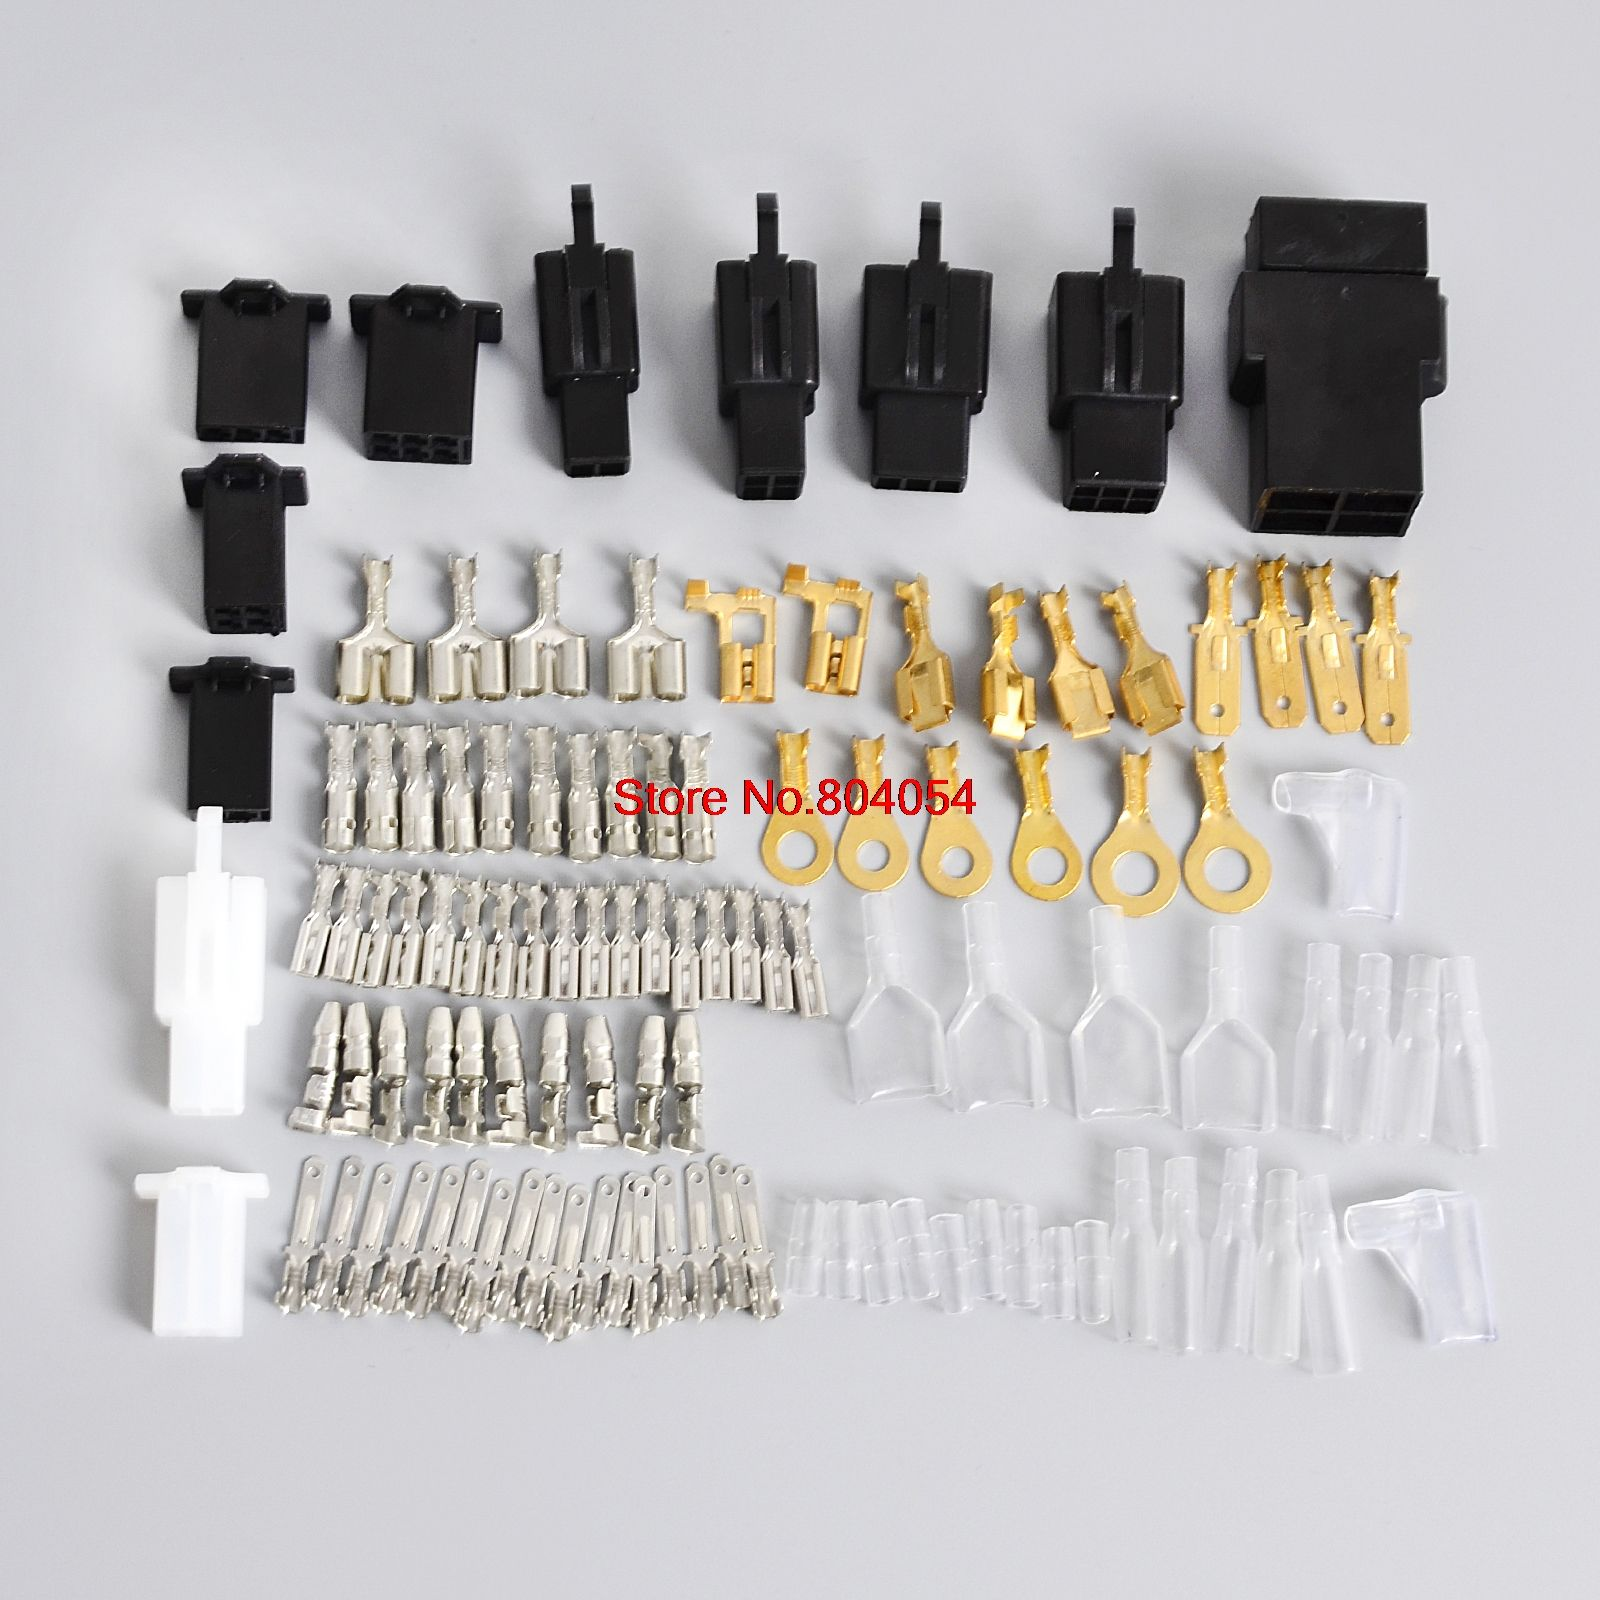 hight resolution of for honda motorcycle electrical wiring harness loom repair kit plugs bullets connectors